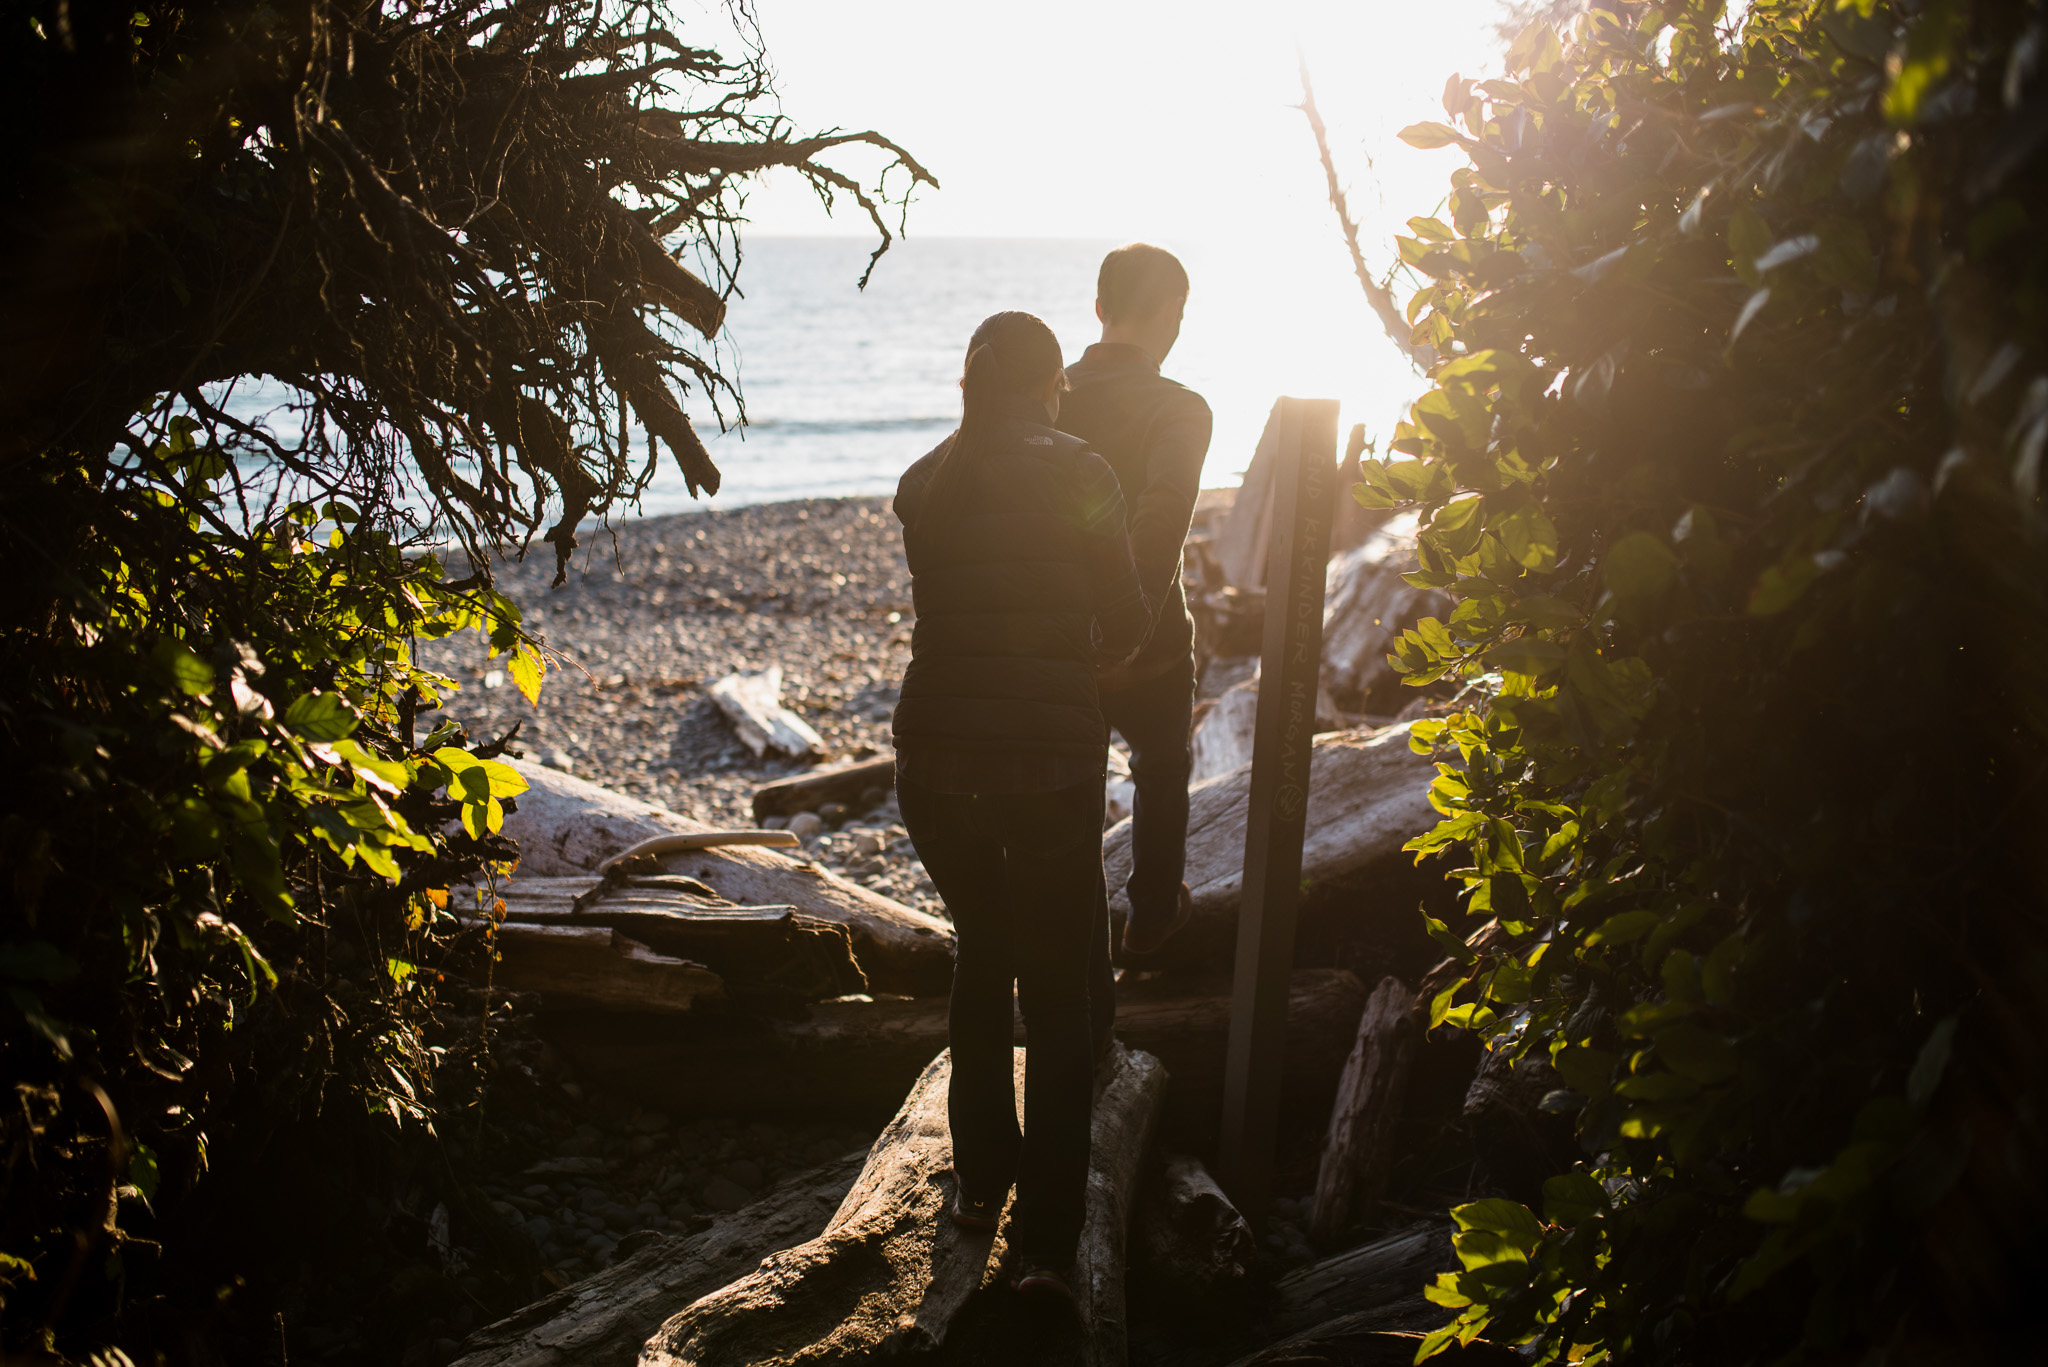 victoria-wedding-photographer-sandcut-beach-engagement-2.jpg